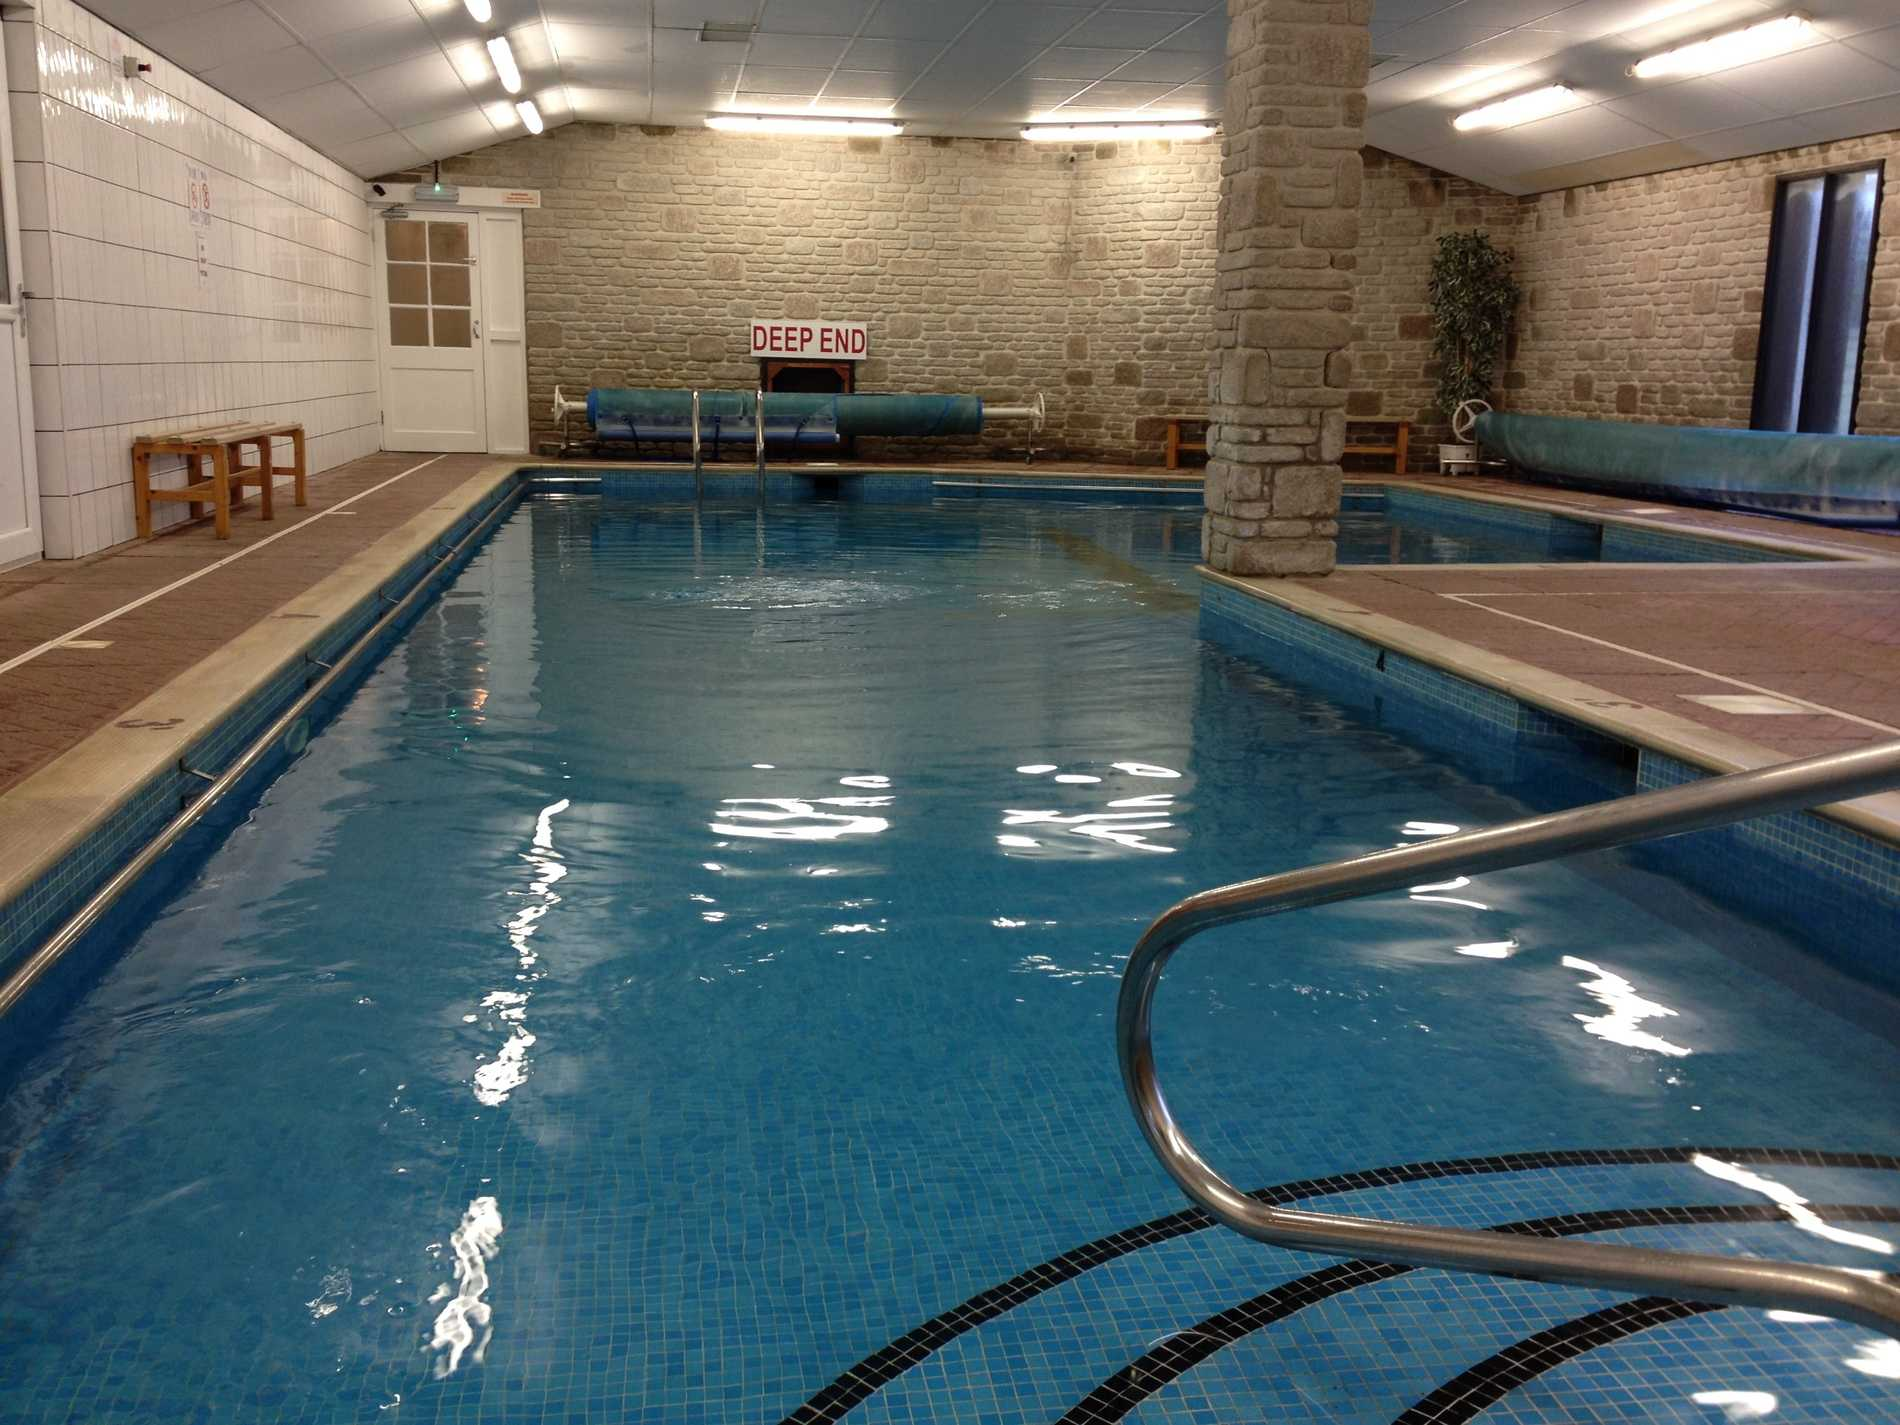 Our warm swimming pool